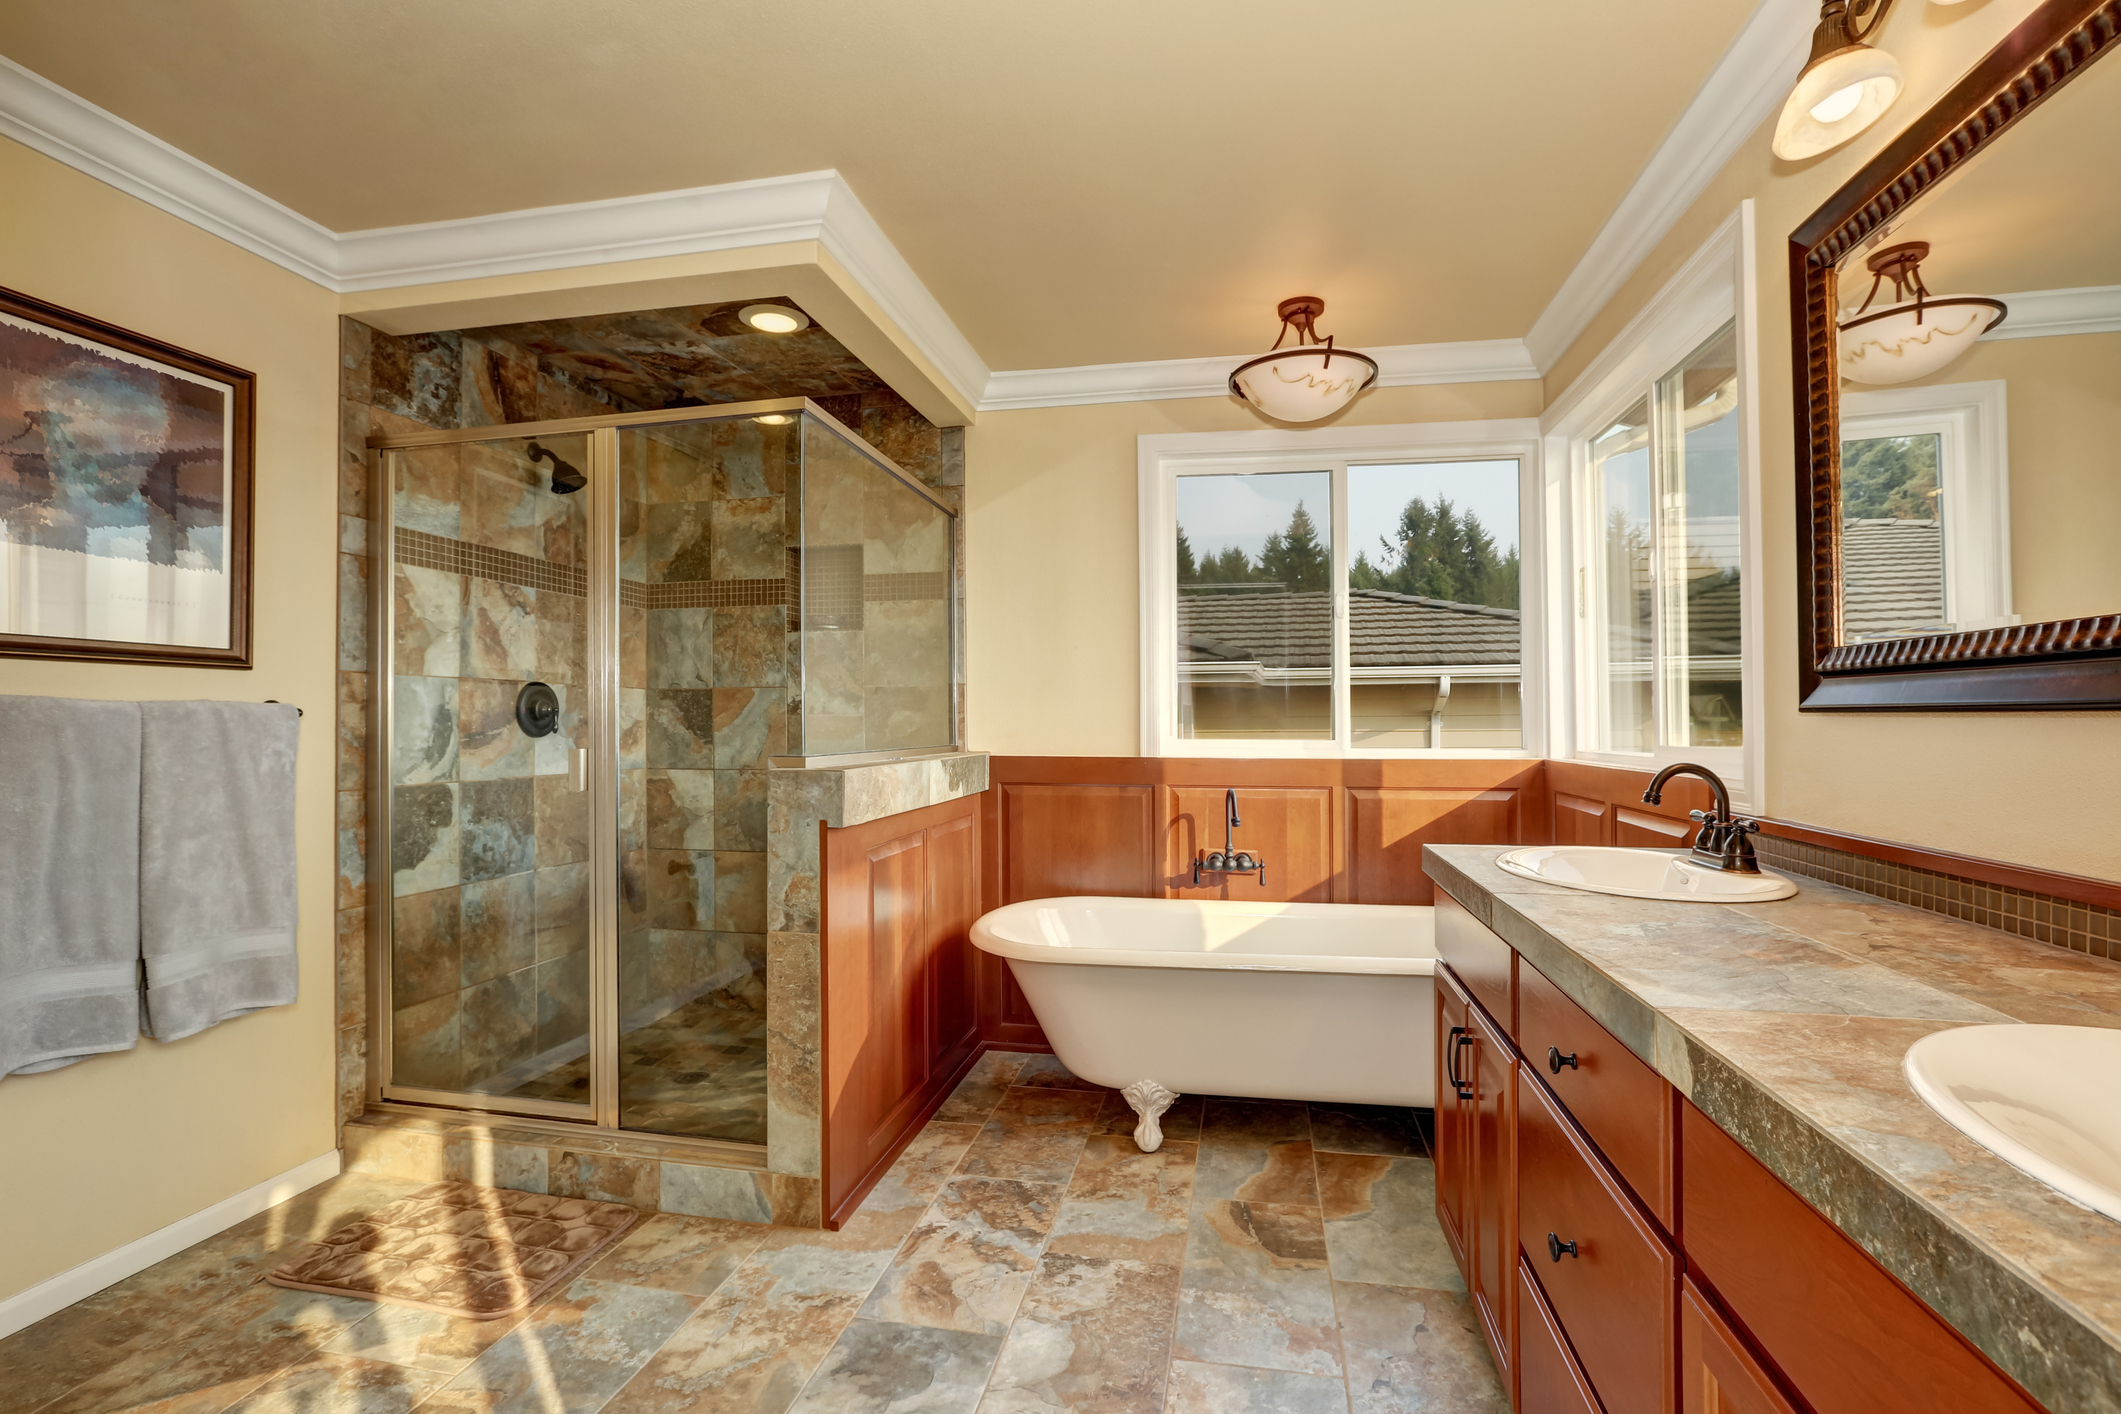 How To Care For Natural Stone Surfaces Lovetoknow